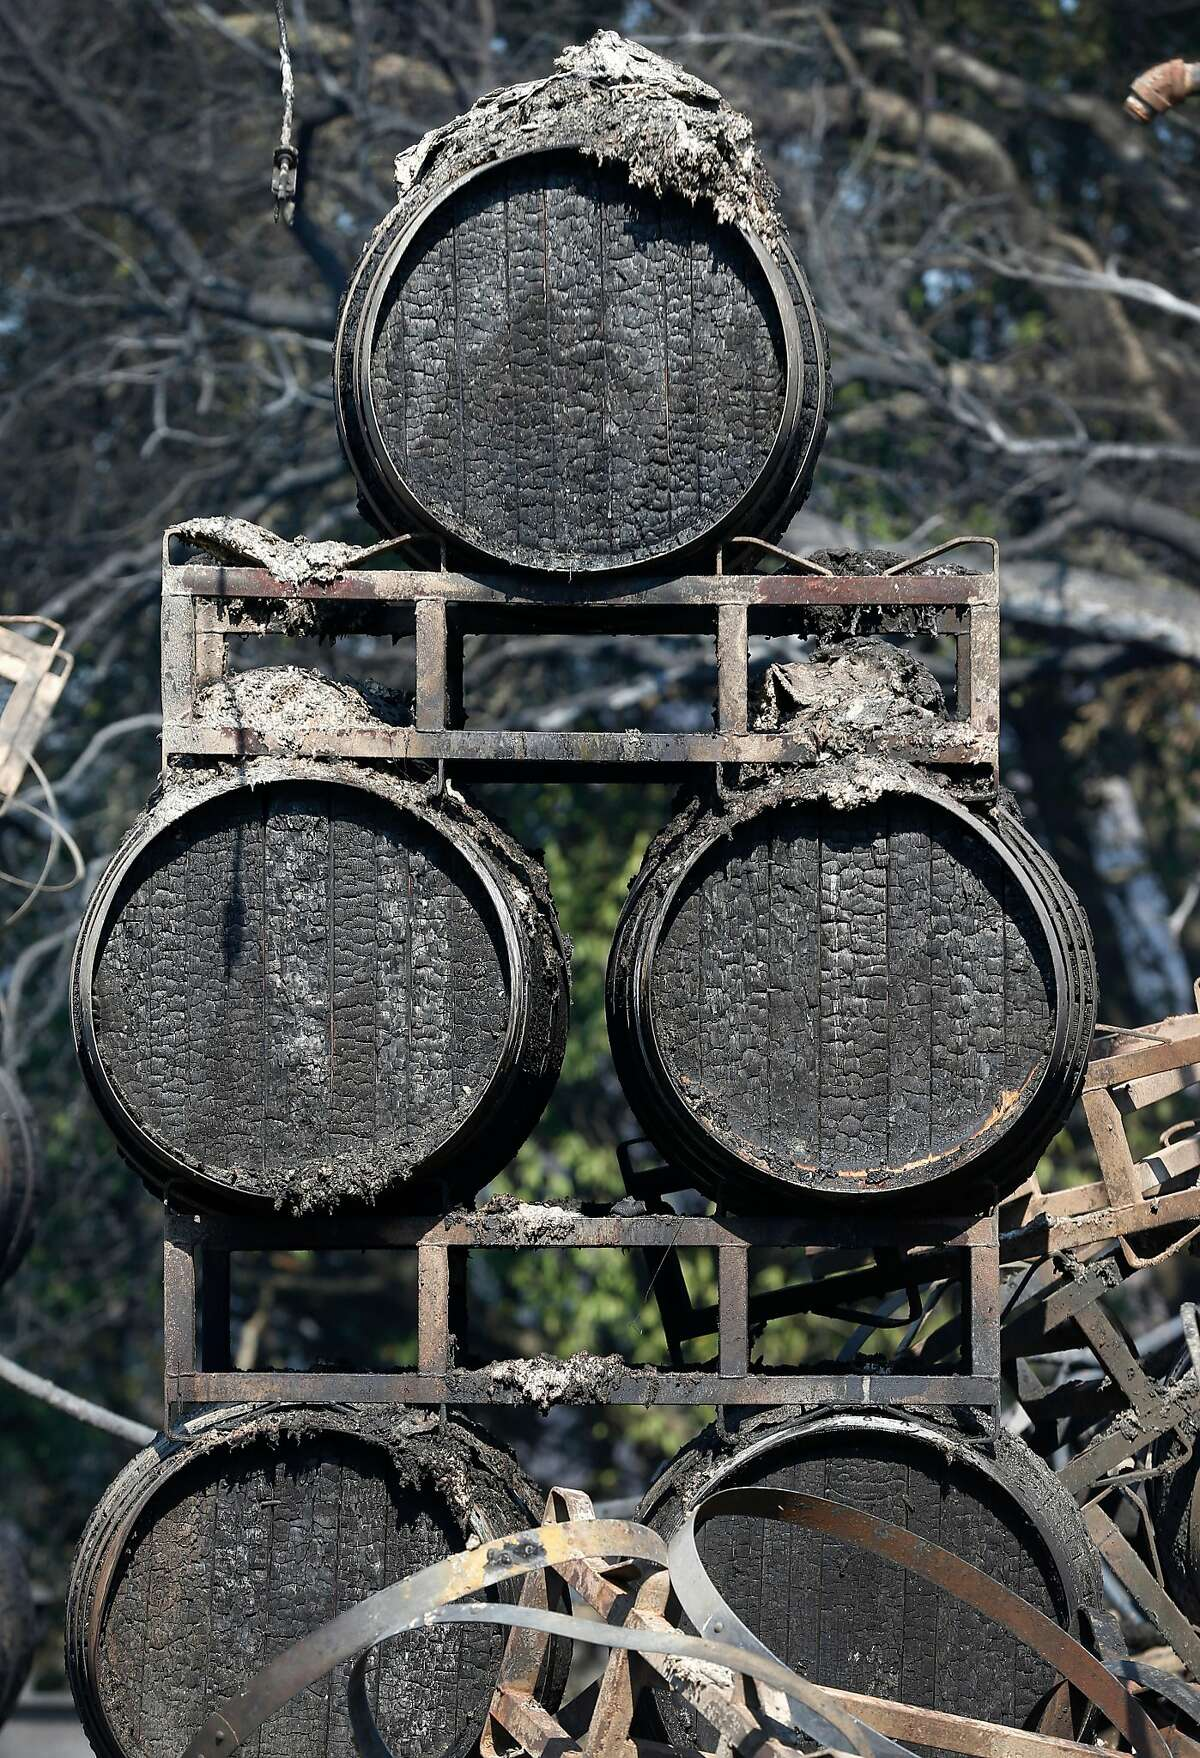 Wine barrels are charred at the Paradise Ridge Winery in Santa Rosa, Calif. on Thursday Oct. 12, 2017 after the Tubbs Fire destroyed the property but spared the vineyards.